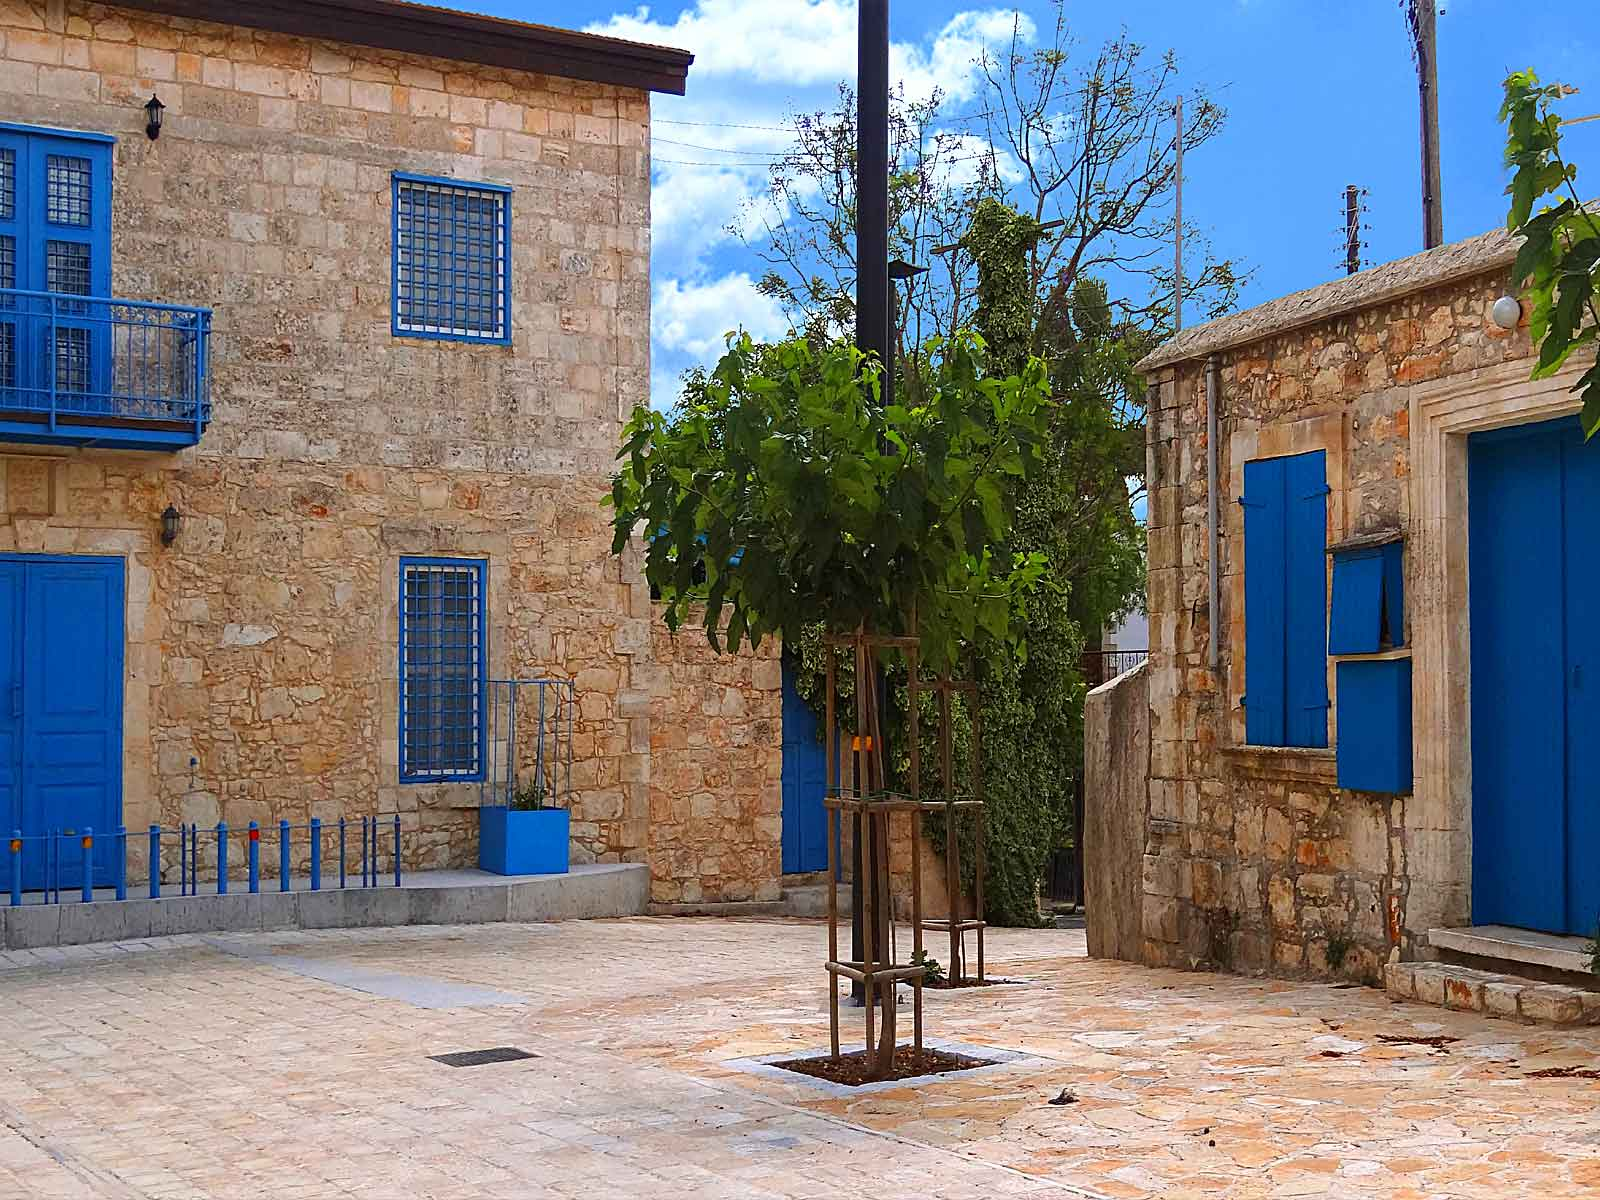 rural tourism in cyprus essay